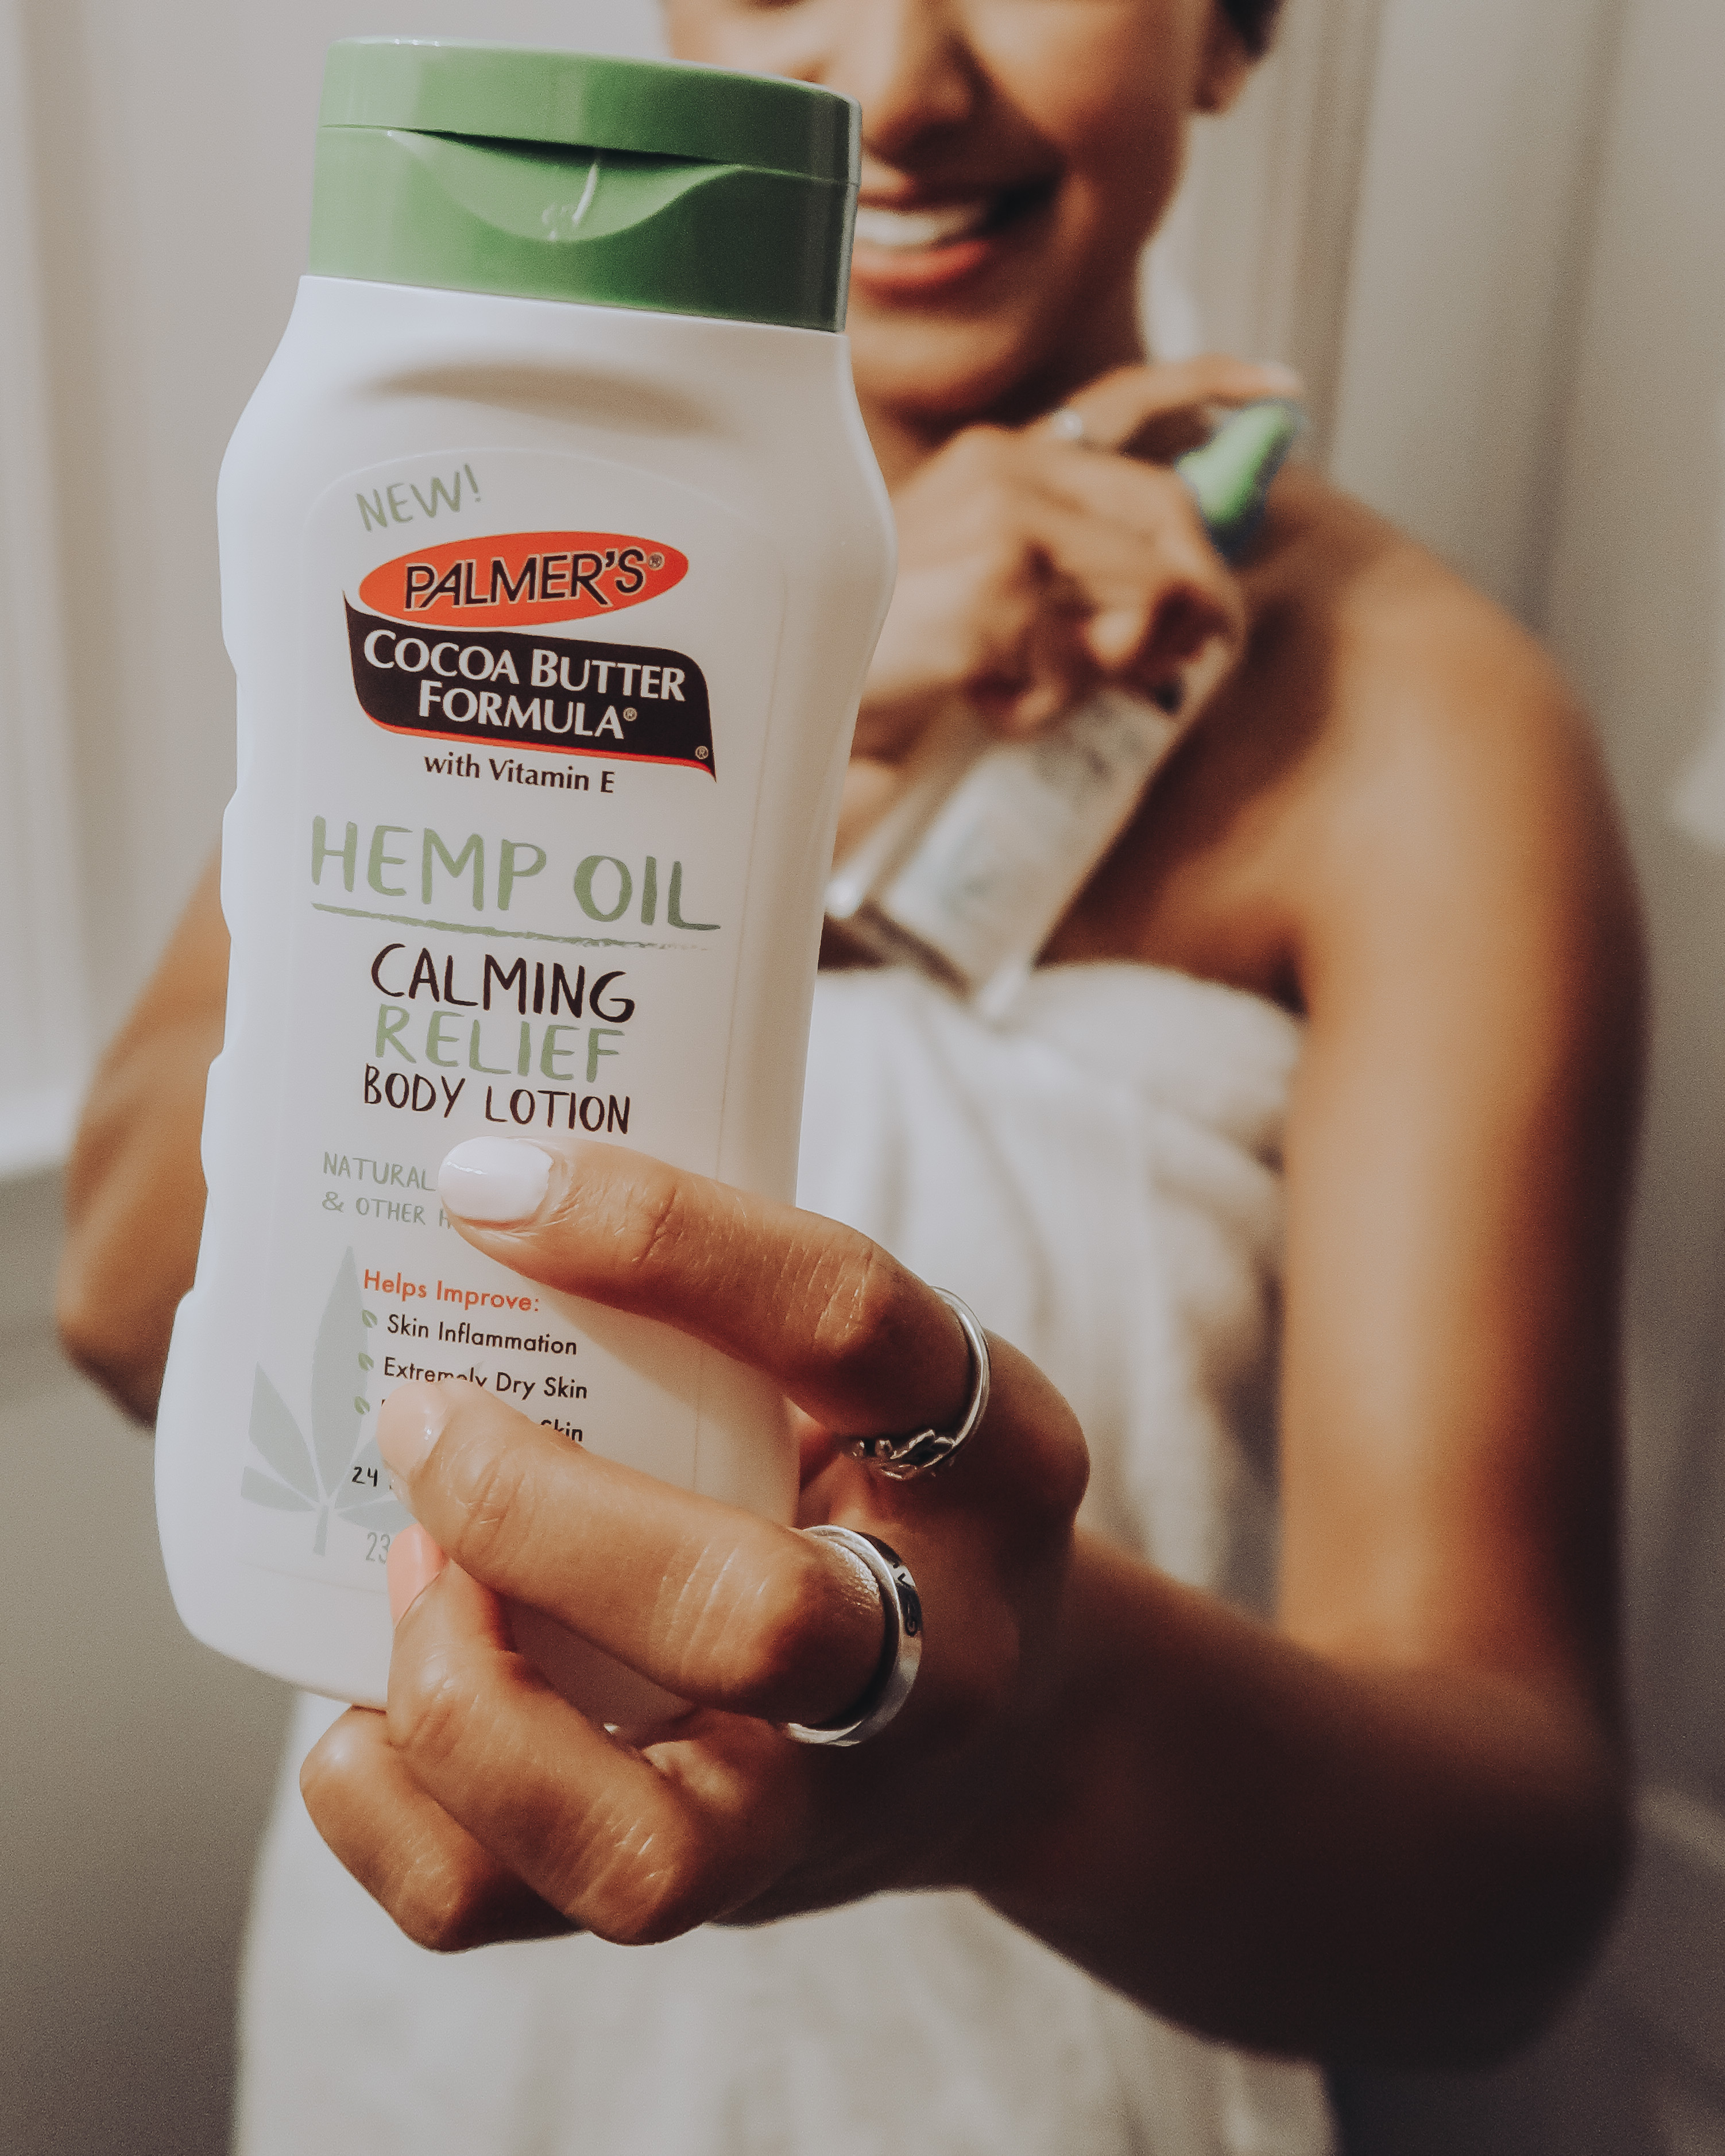 Palmer's Hemp Oil Calming Relief Body Lotion for dry, irritated skin in hand